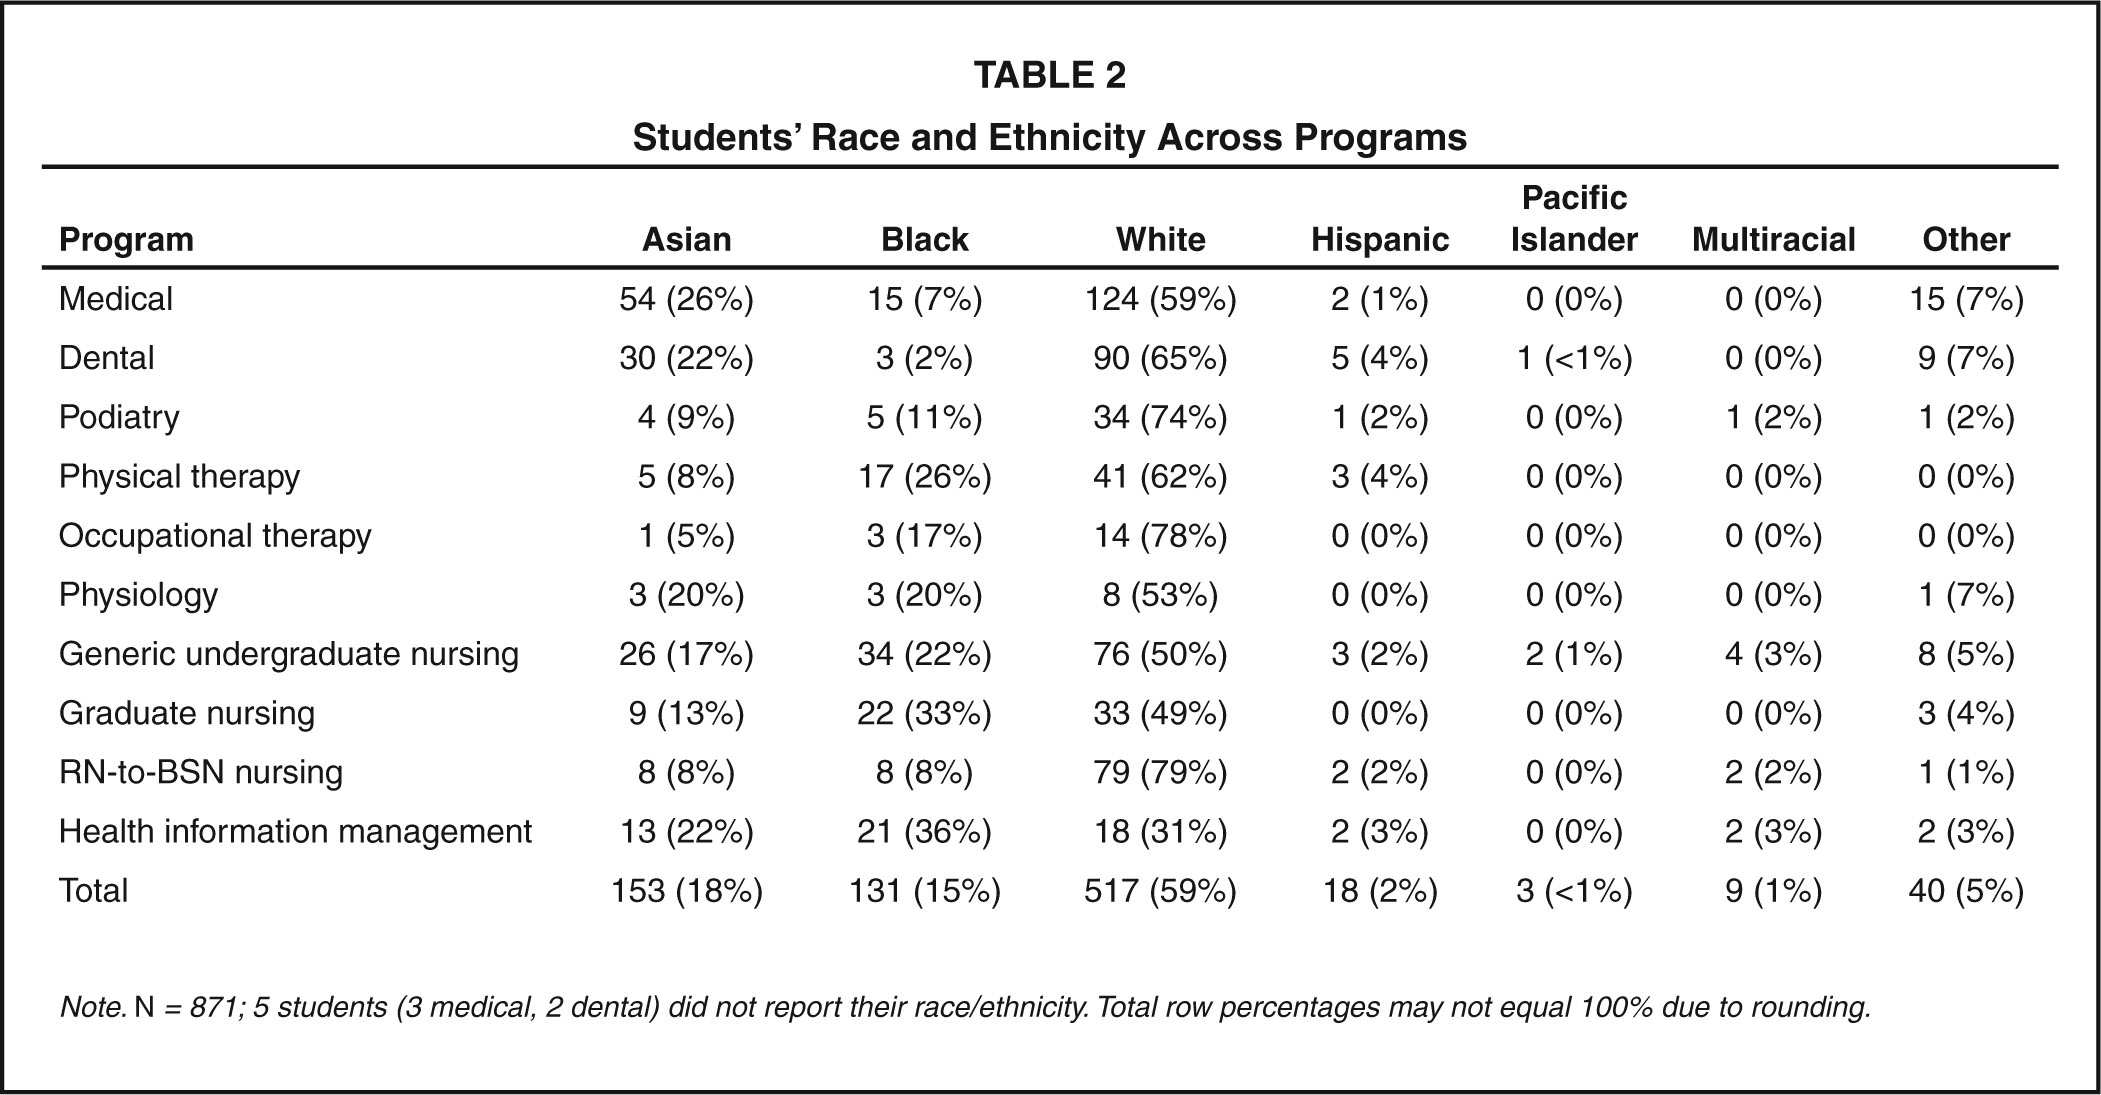 Students' Race and Ethnicity Across Programs